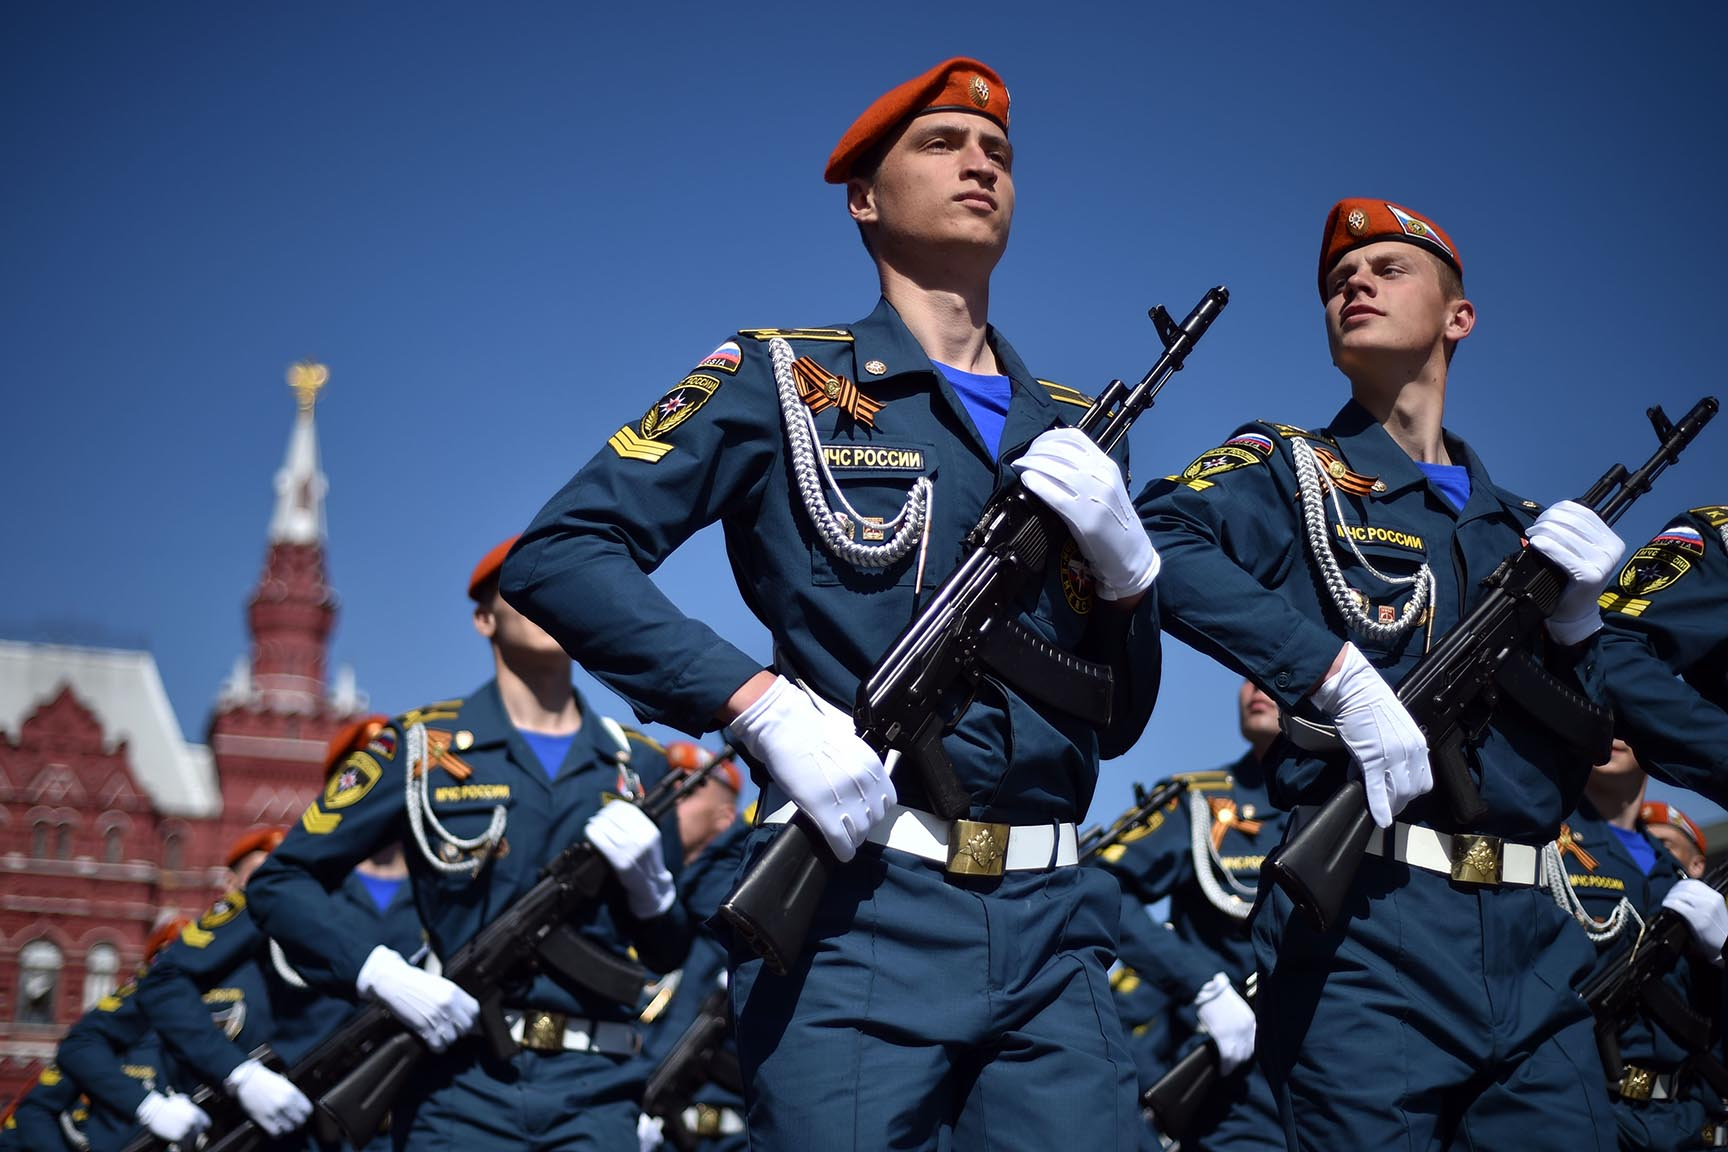 Russian Emergency Ministry cadets march